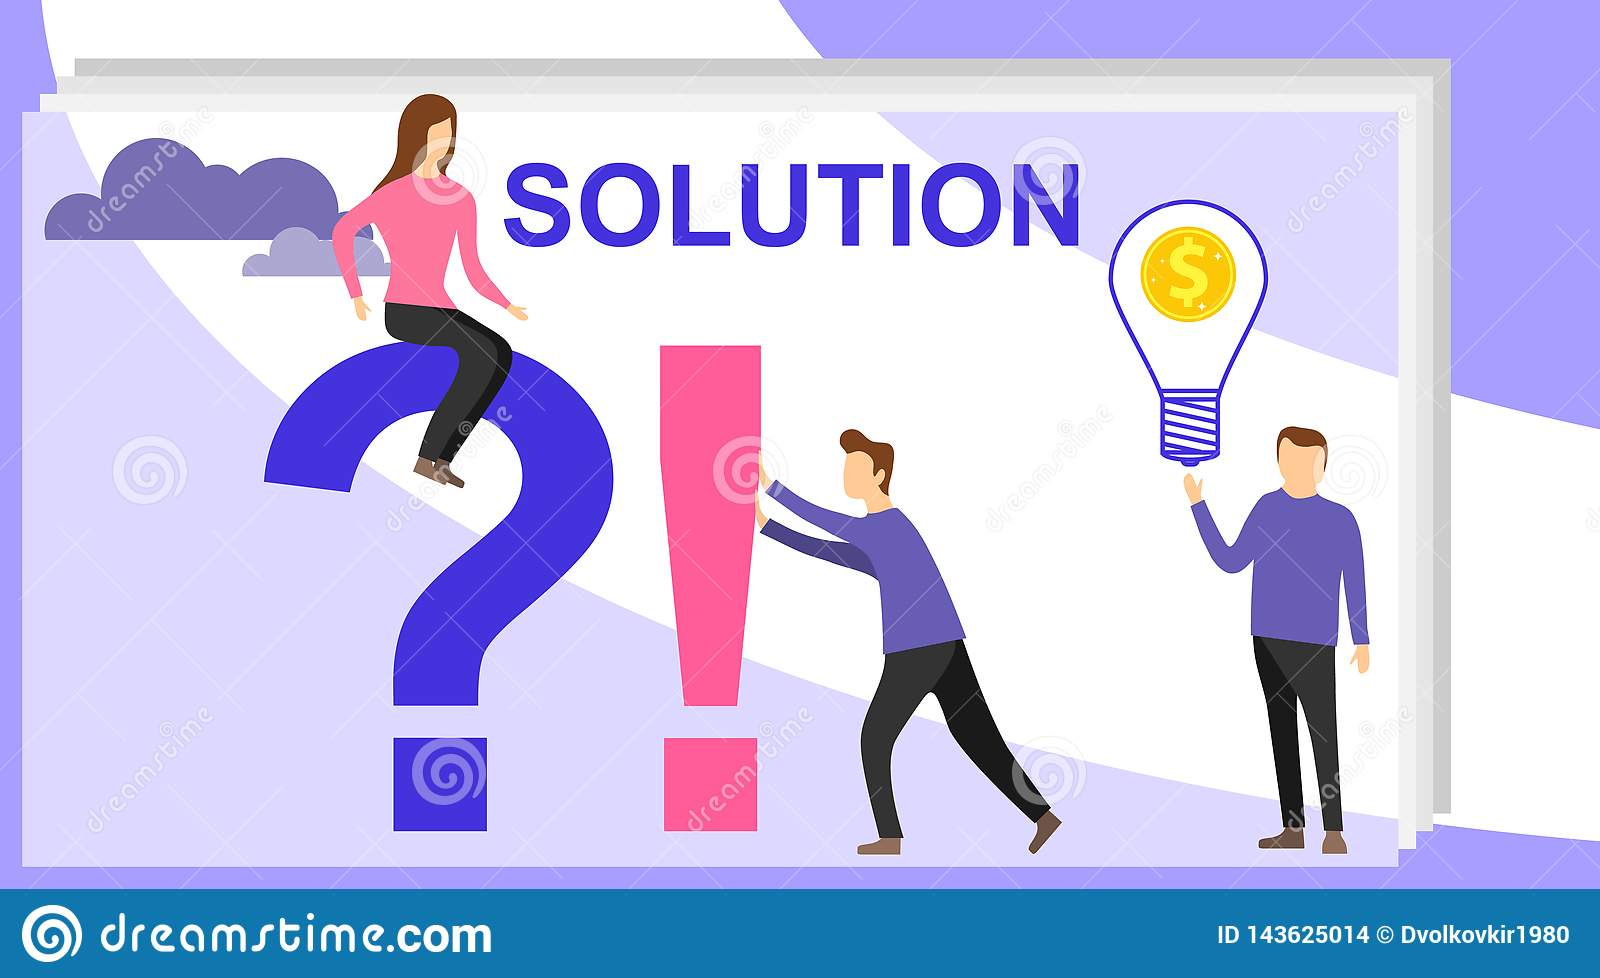 Problem And Solution Concept  Search For Confused Idea Or